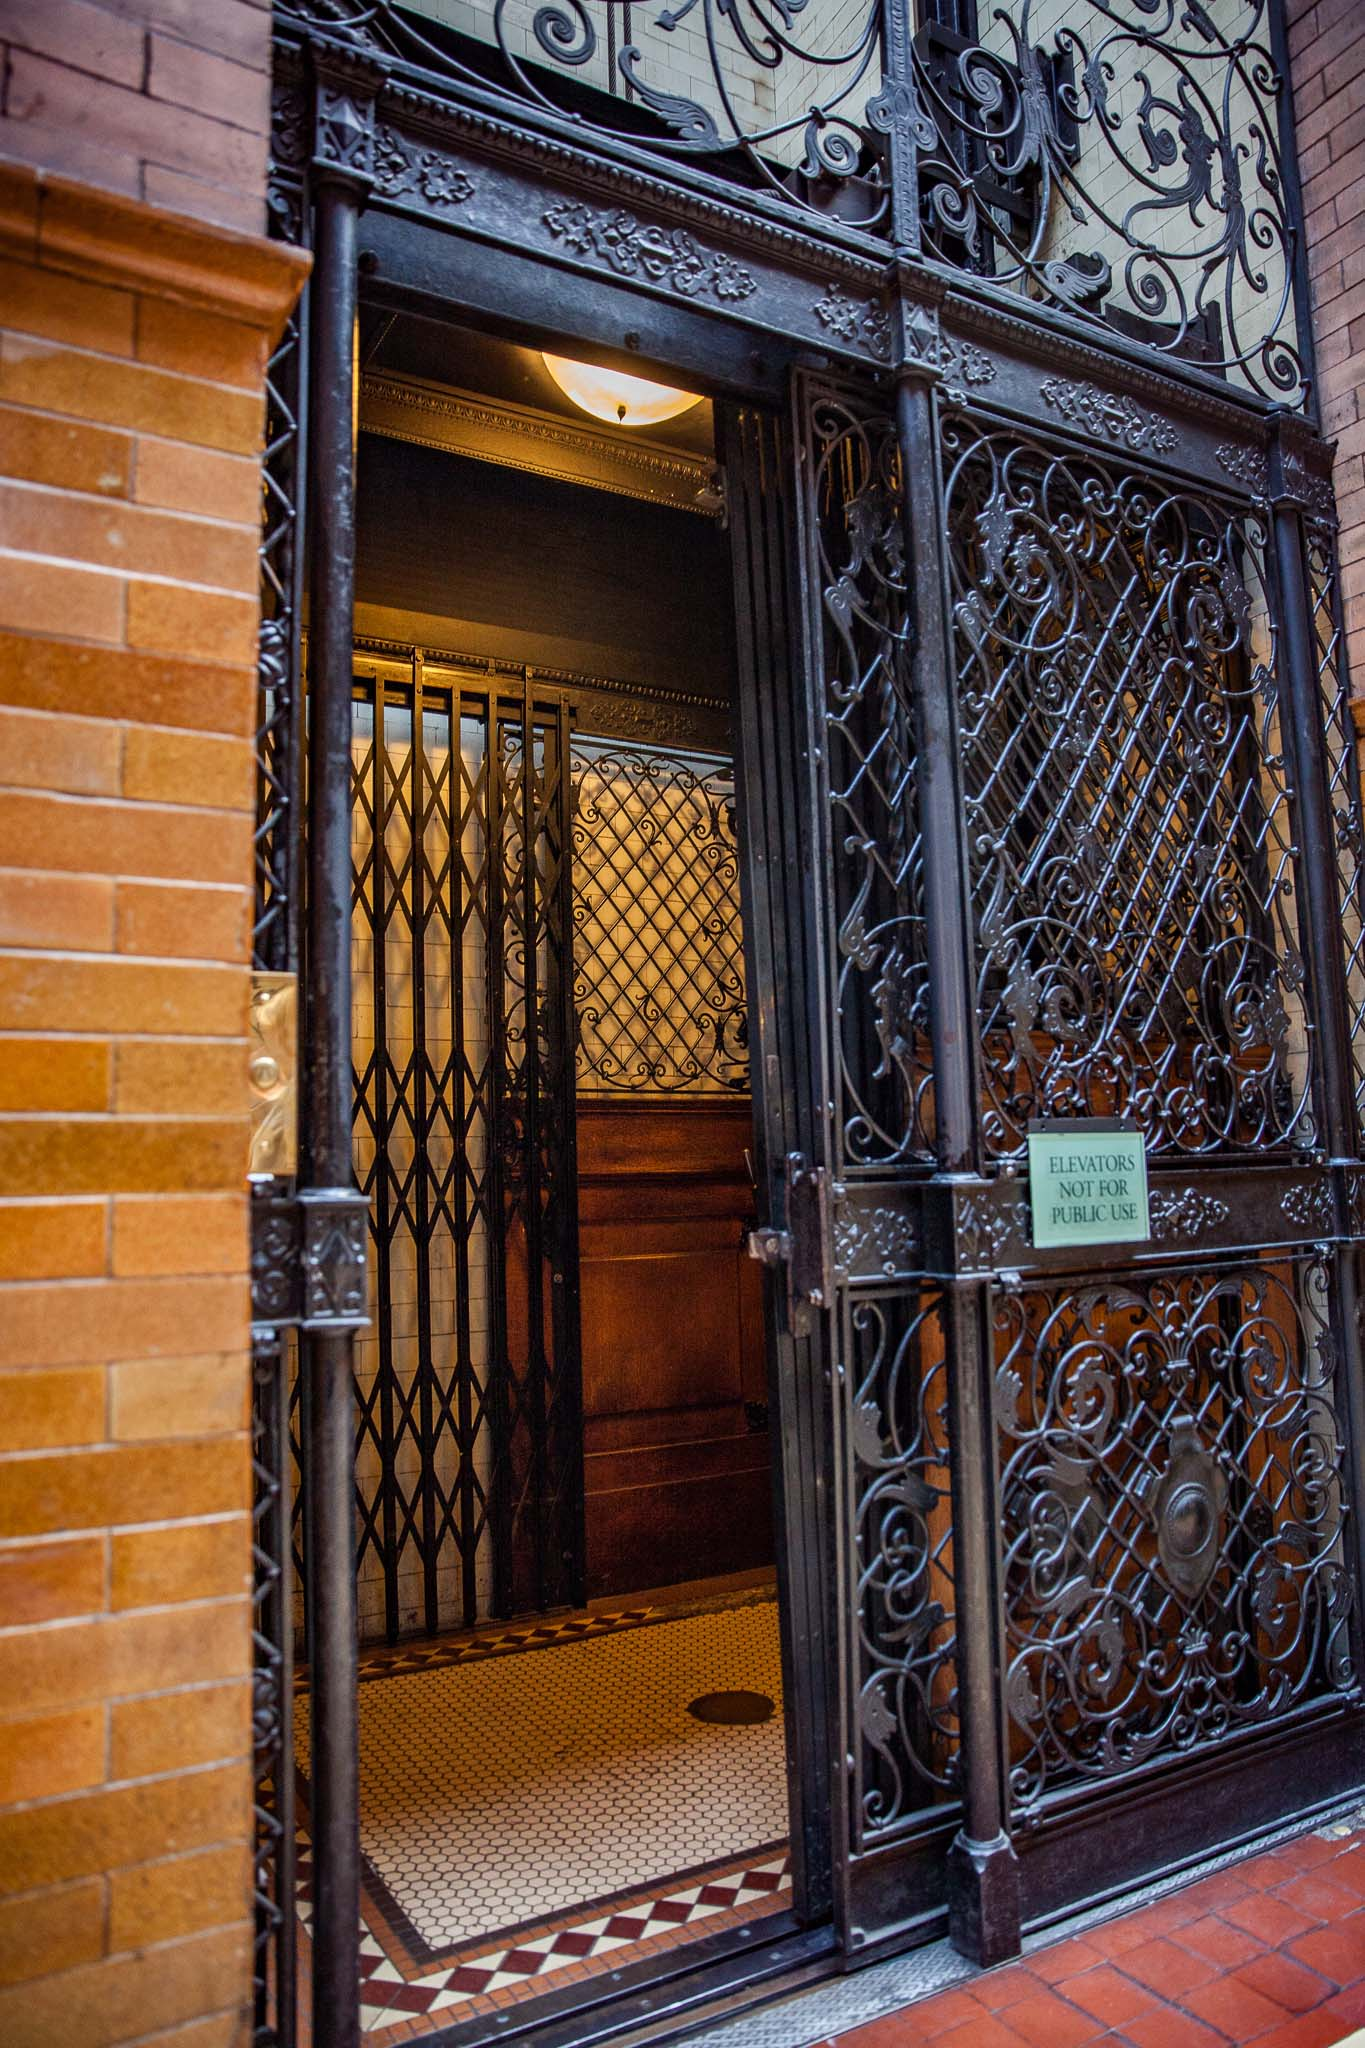 L'ascenseur du Bradbury Building dans le Historic Core de Los Angeles